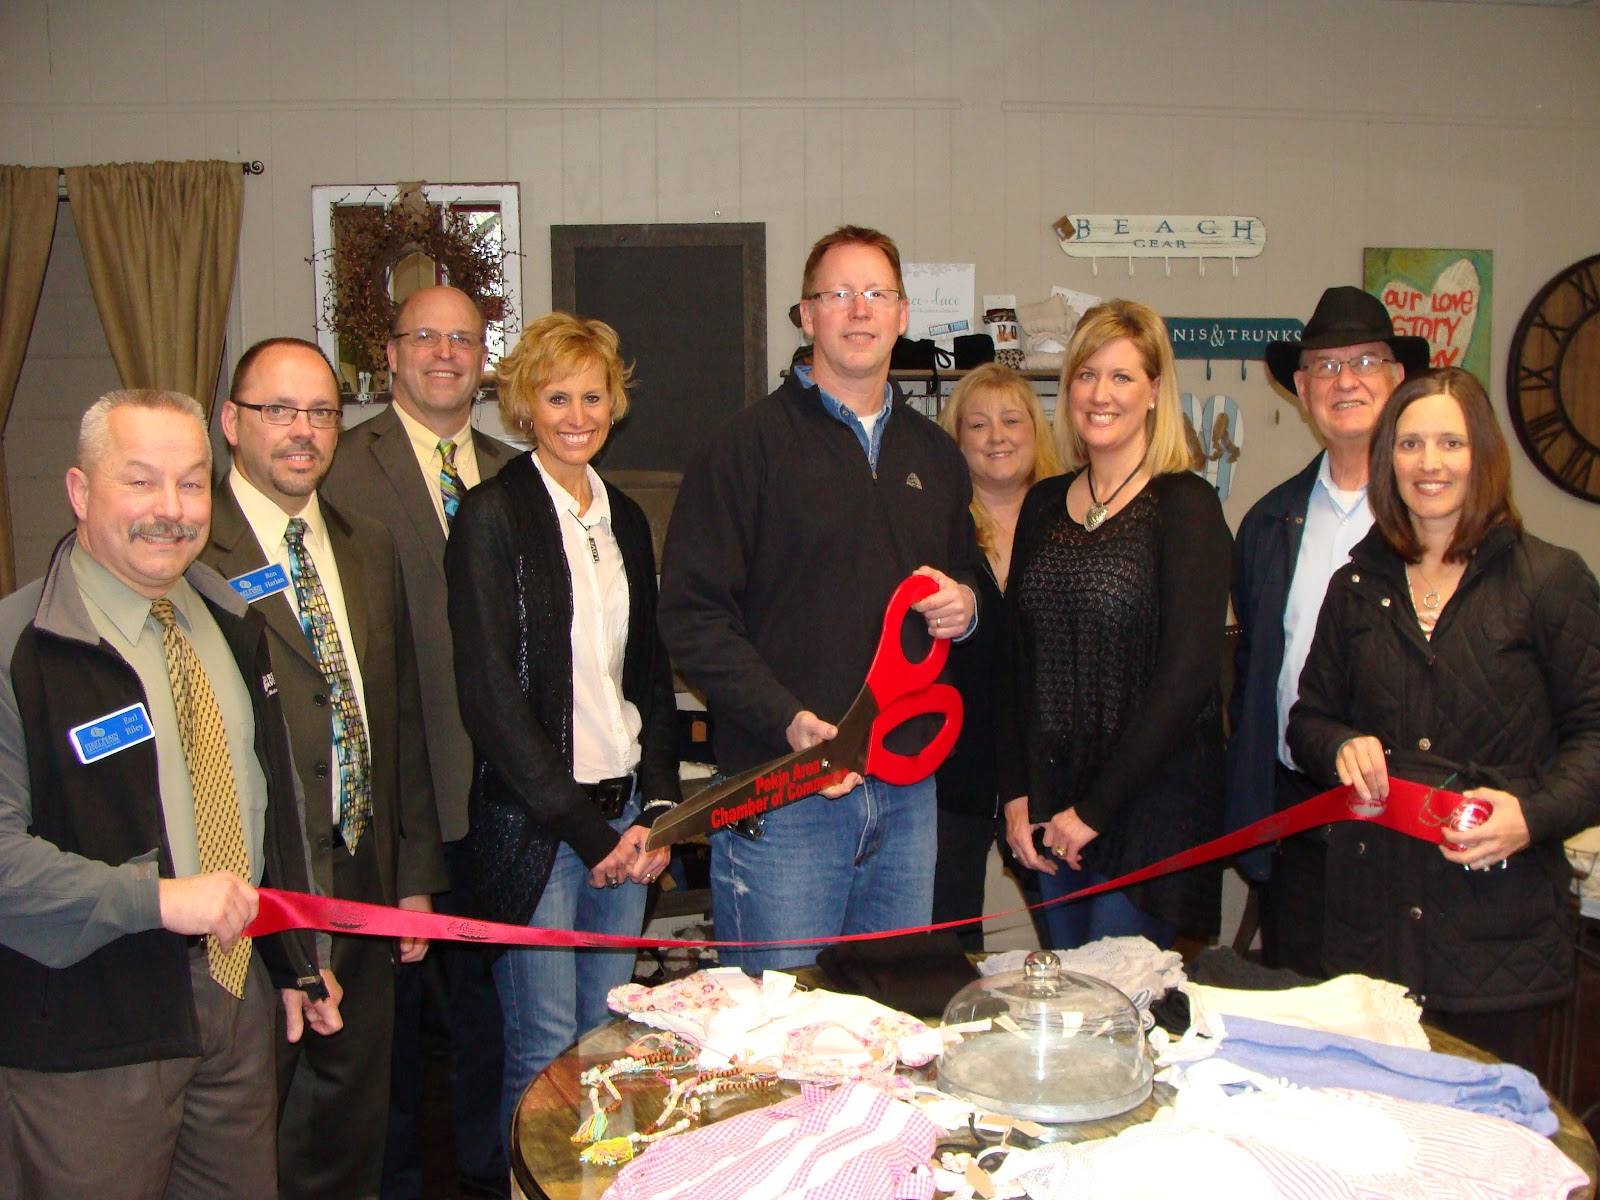 fb4edb0d6723 Representatives of the Pekin Area Chamber of Commerce and the City of Pekin  congratulated Pekin Glass and Mirror on their recent opening of a Gift Shop  in ...